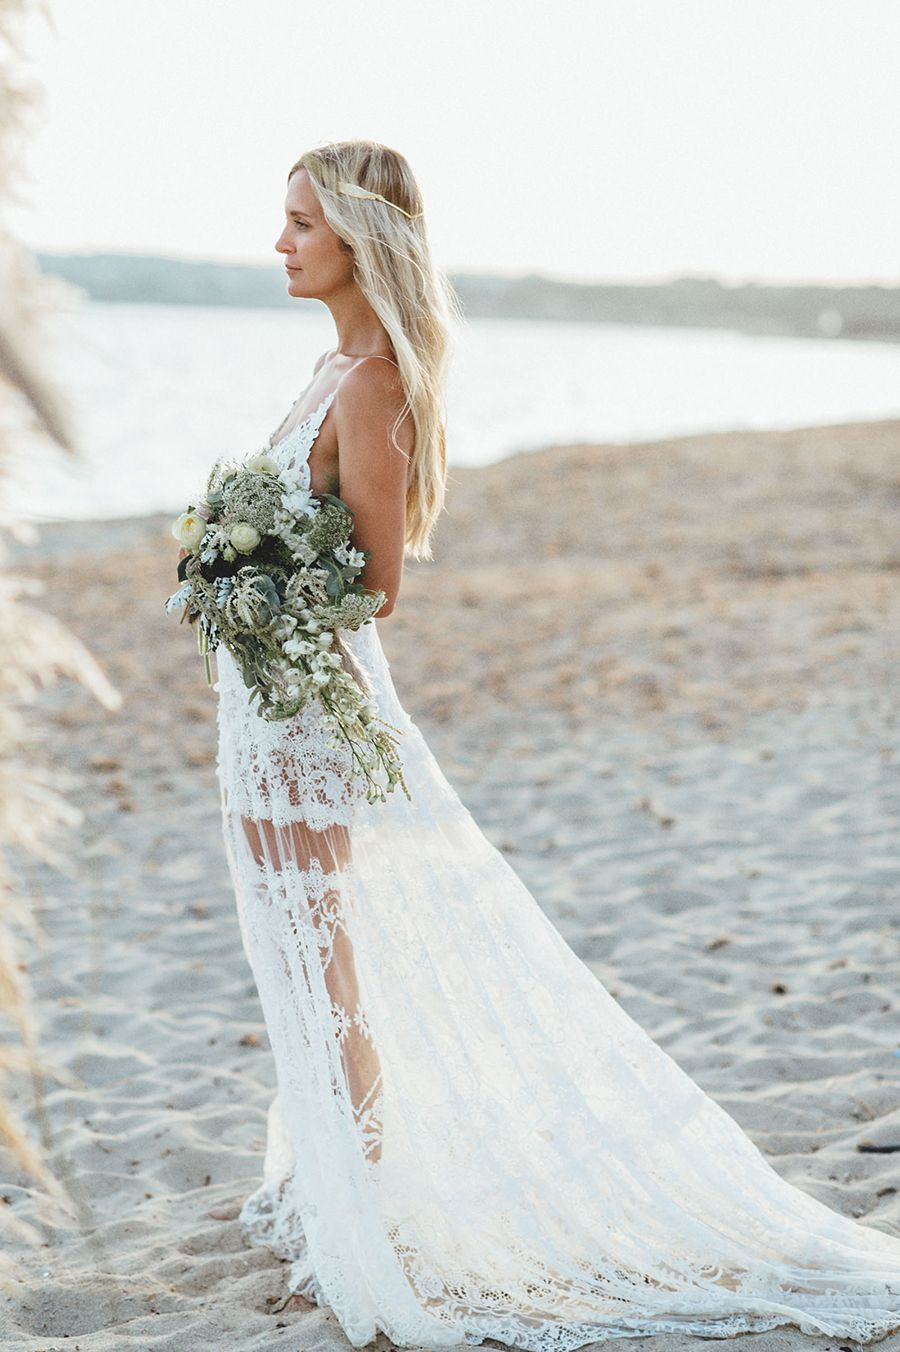 Strandhochzeit auf Formentera | Pinterest | Wedding, Beach wedding ...